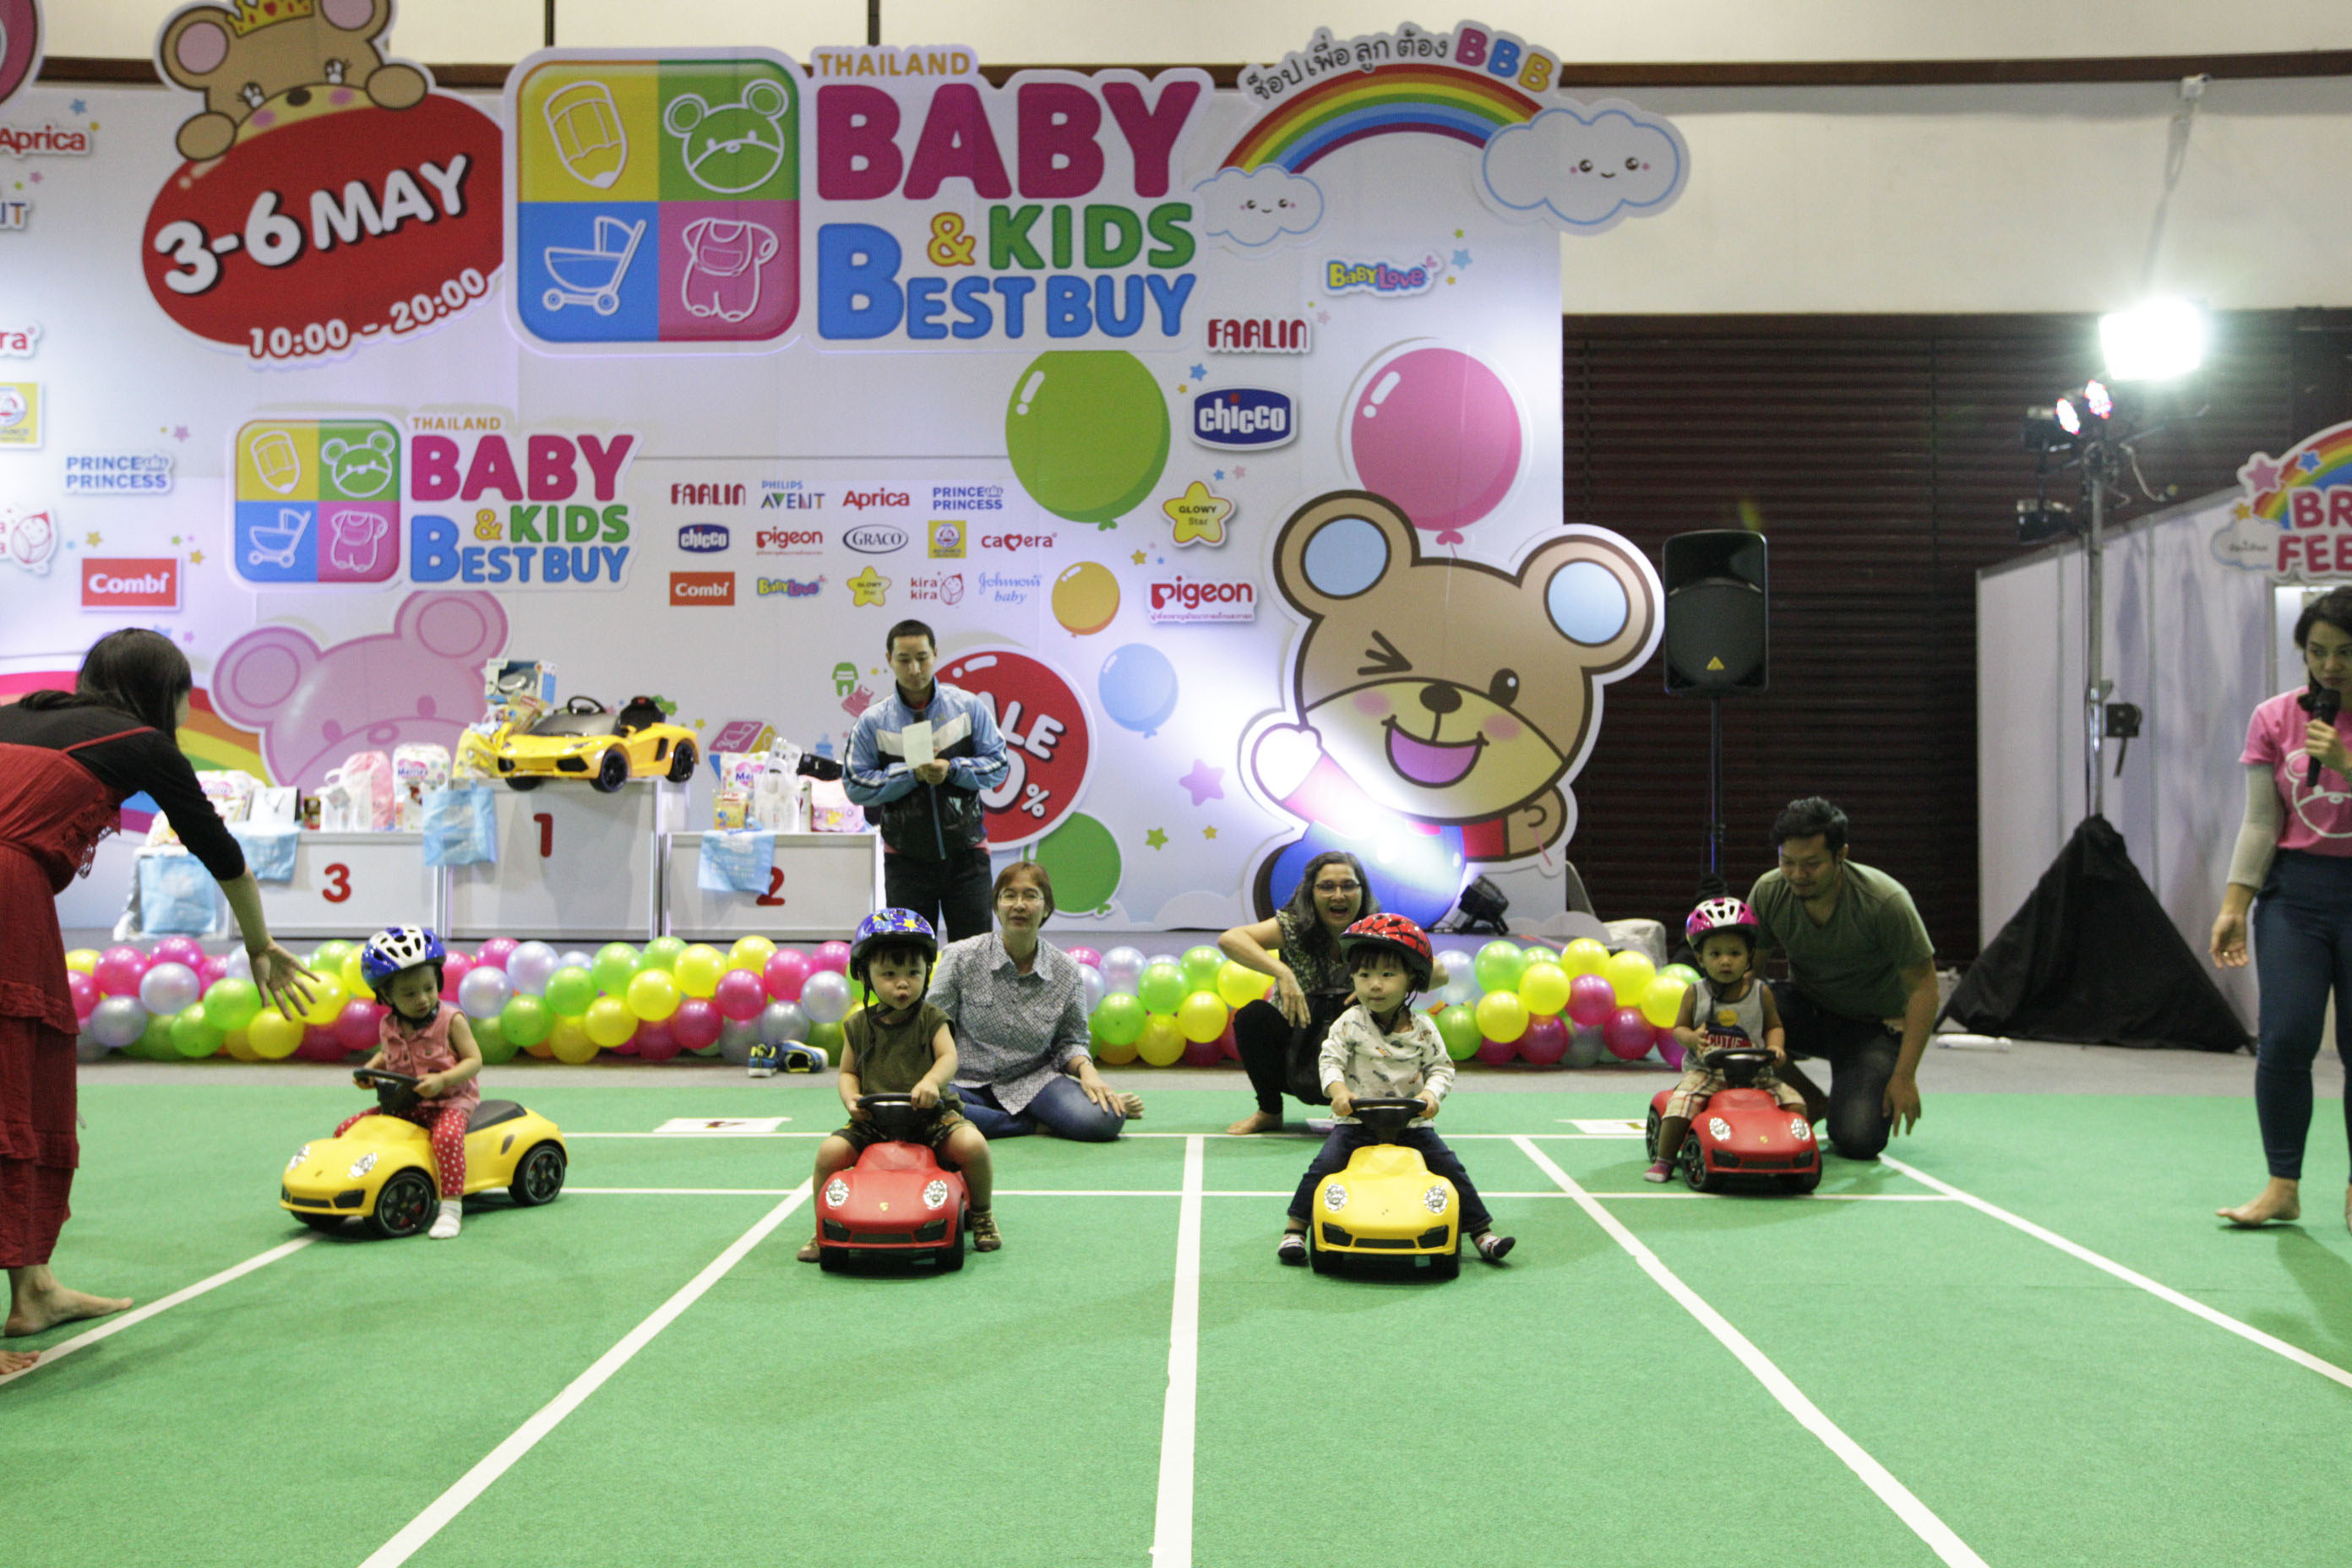 Thailand Baby & Kids Best Buy ครั้งที่ 30